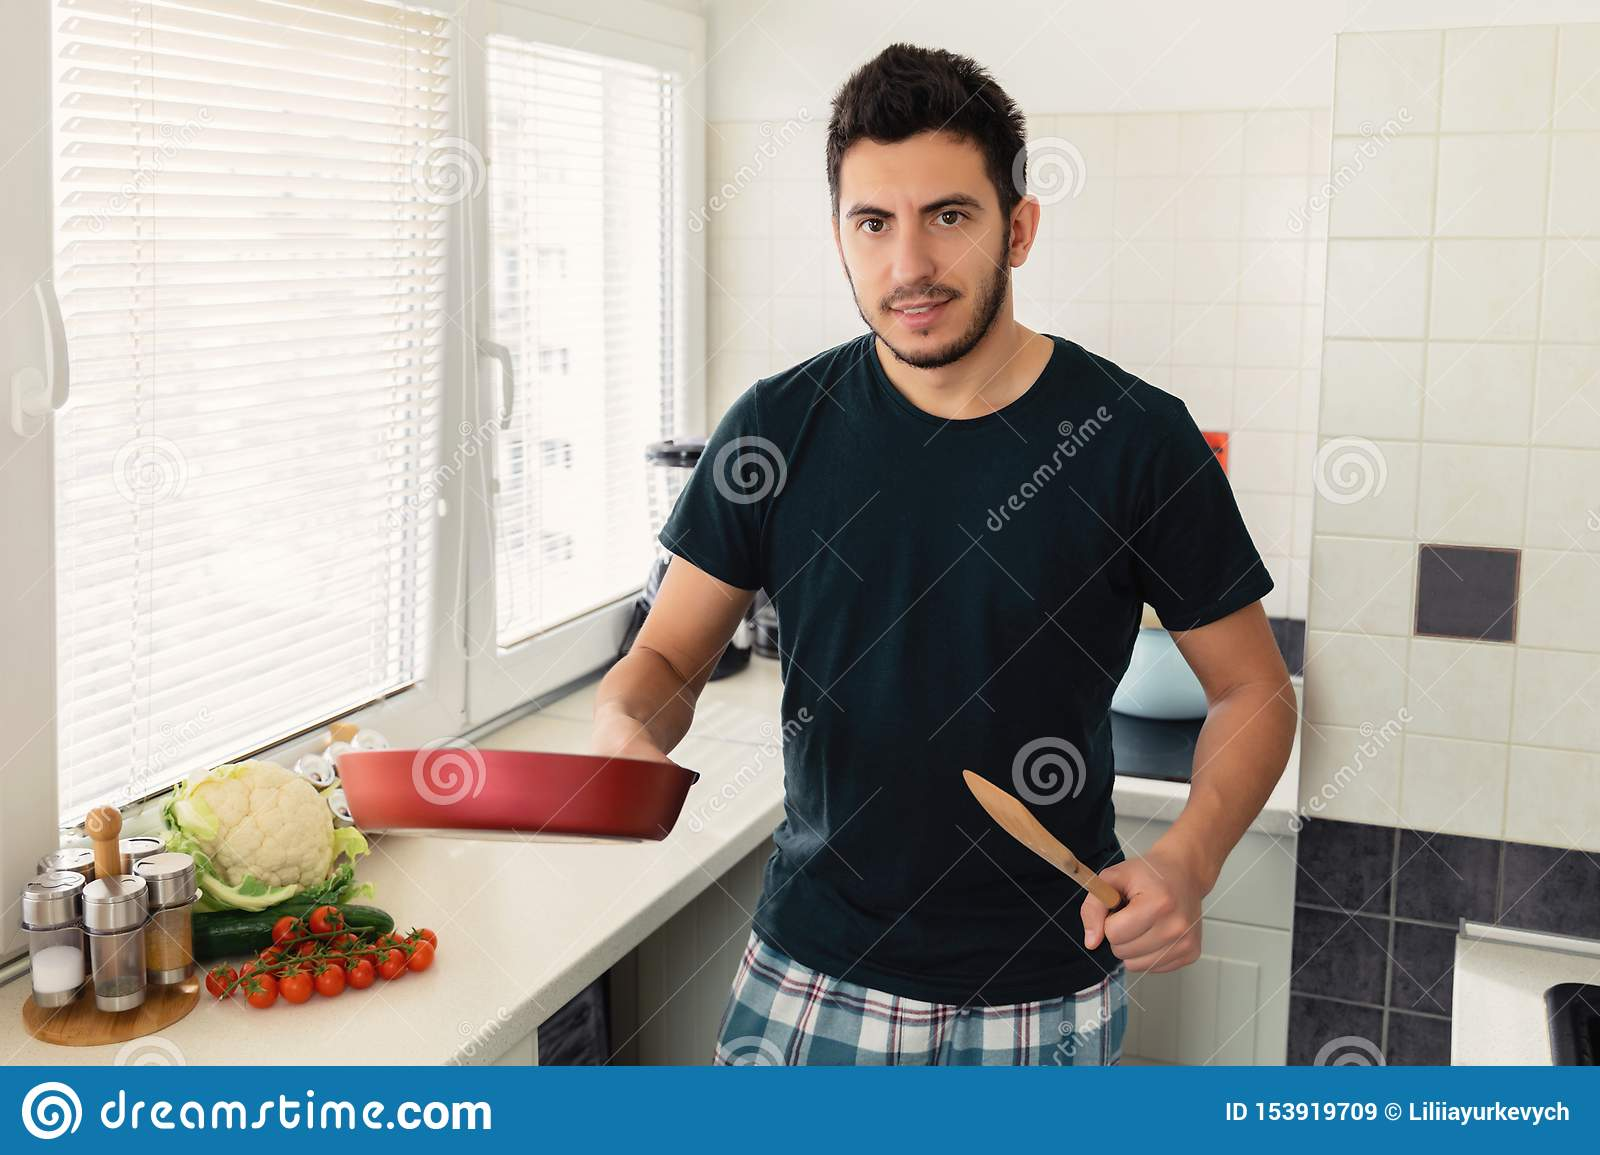 A young handsome brunette man is standing in the kitchen and holding a frying pan in his hands.